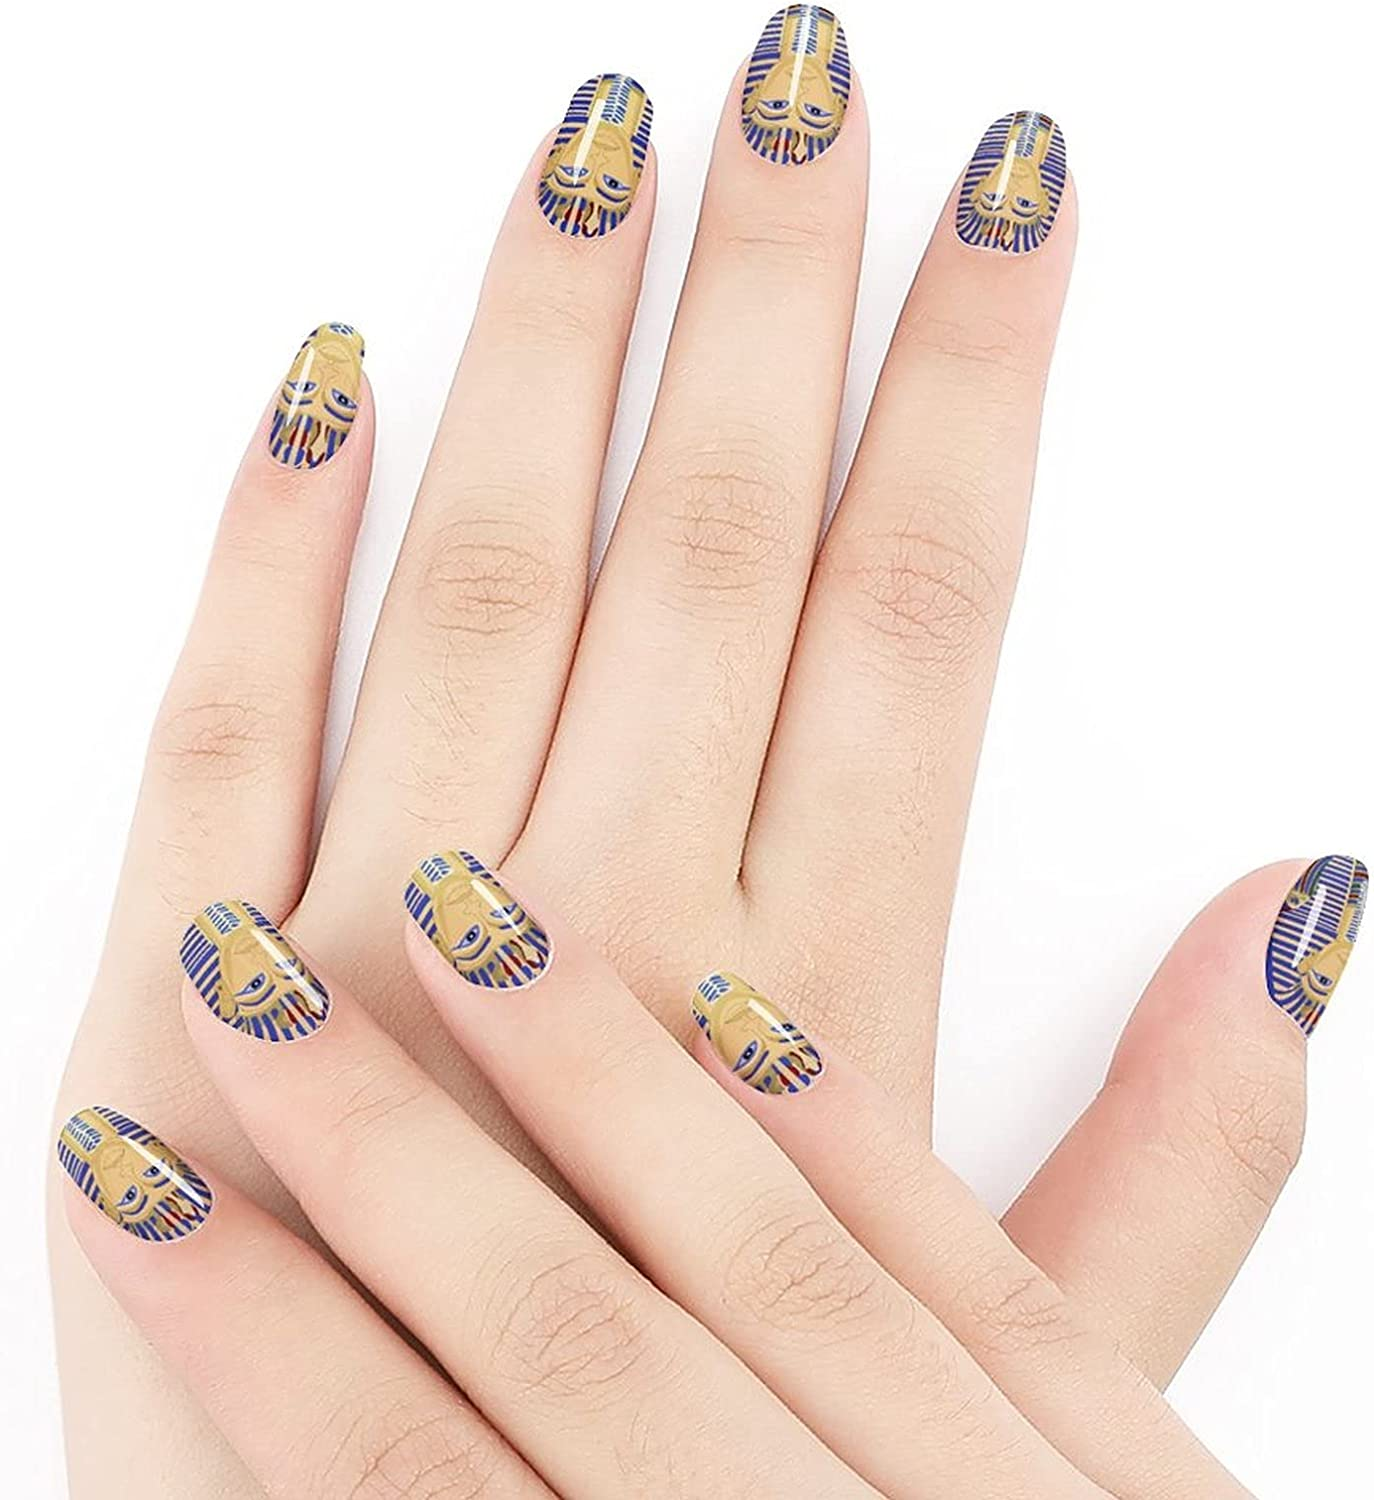 NiYoung Self-Adhesive Nail Art Stickers Shipping included Selling DIY Decoration